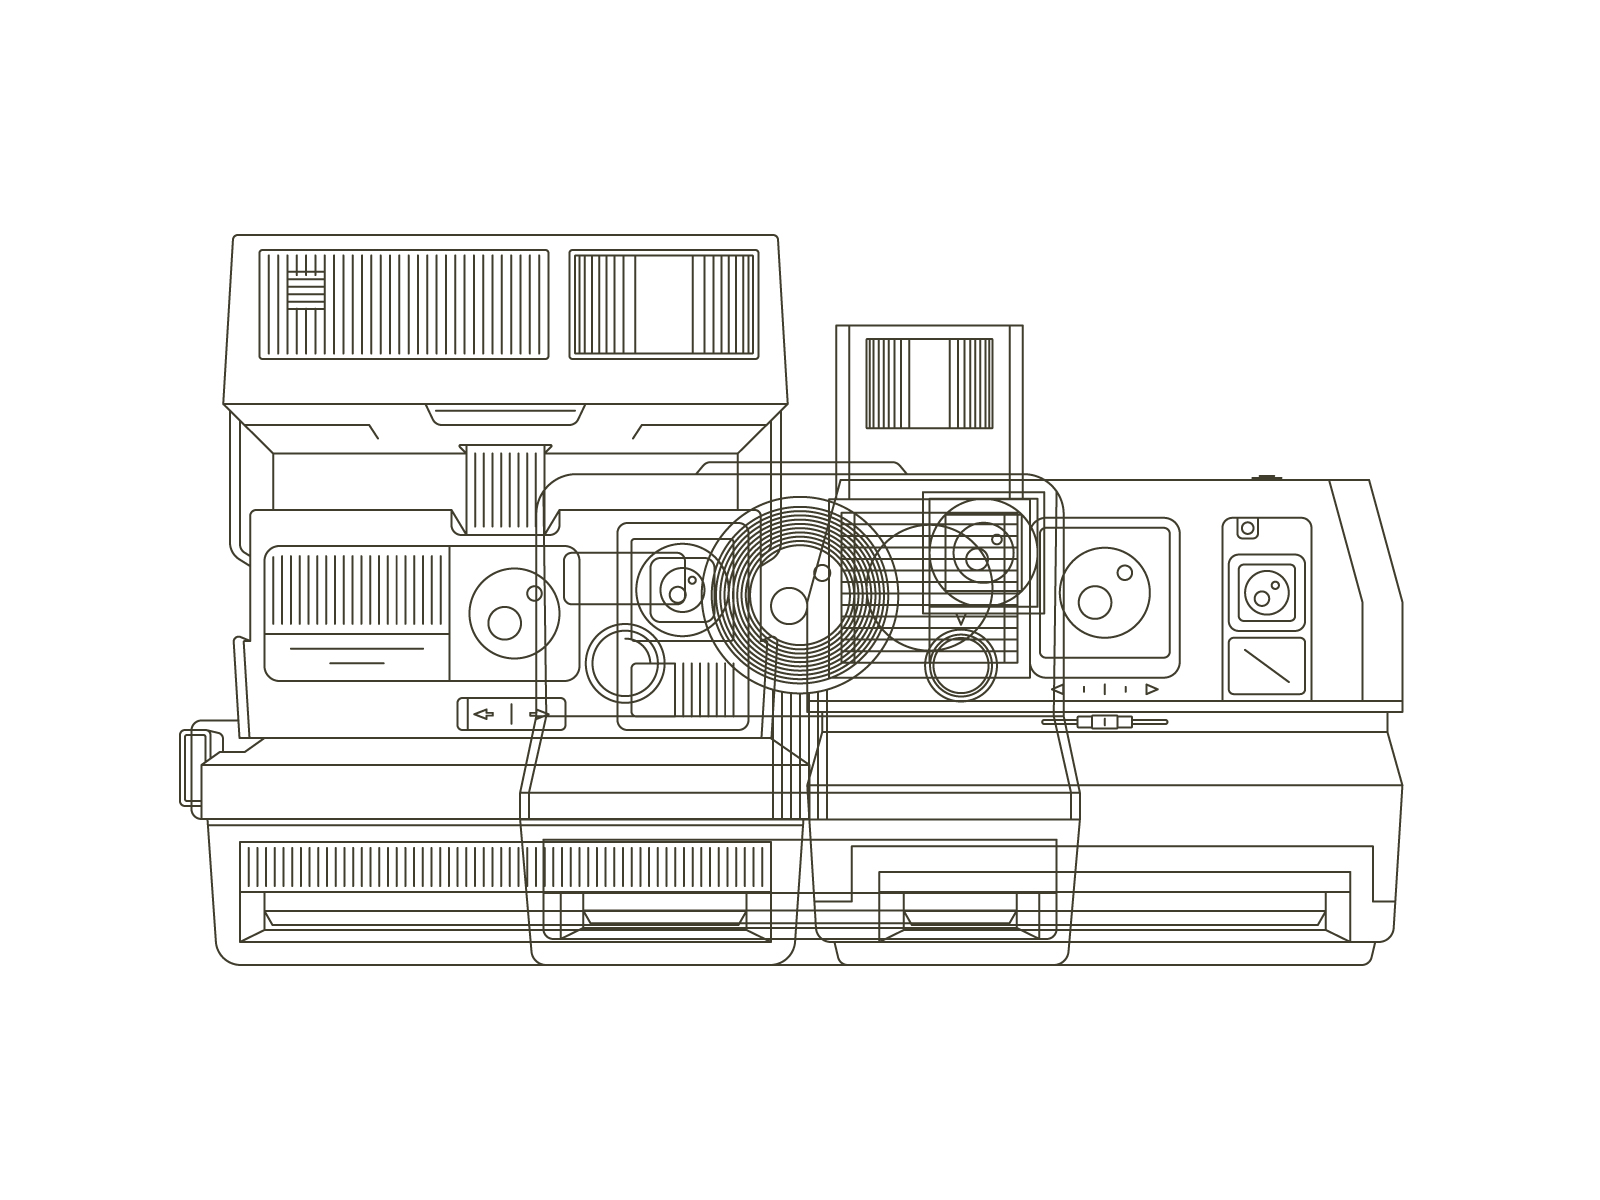 Instant cameras - A mini-series of three cameras. This series all began with a desire to create vintage looking line drawings. These three illustrations pay homage what I consider to be Polaroid's best and most iconic instant cameras.